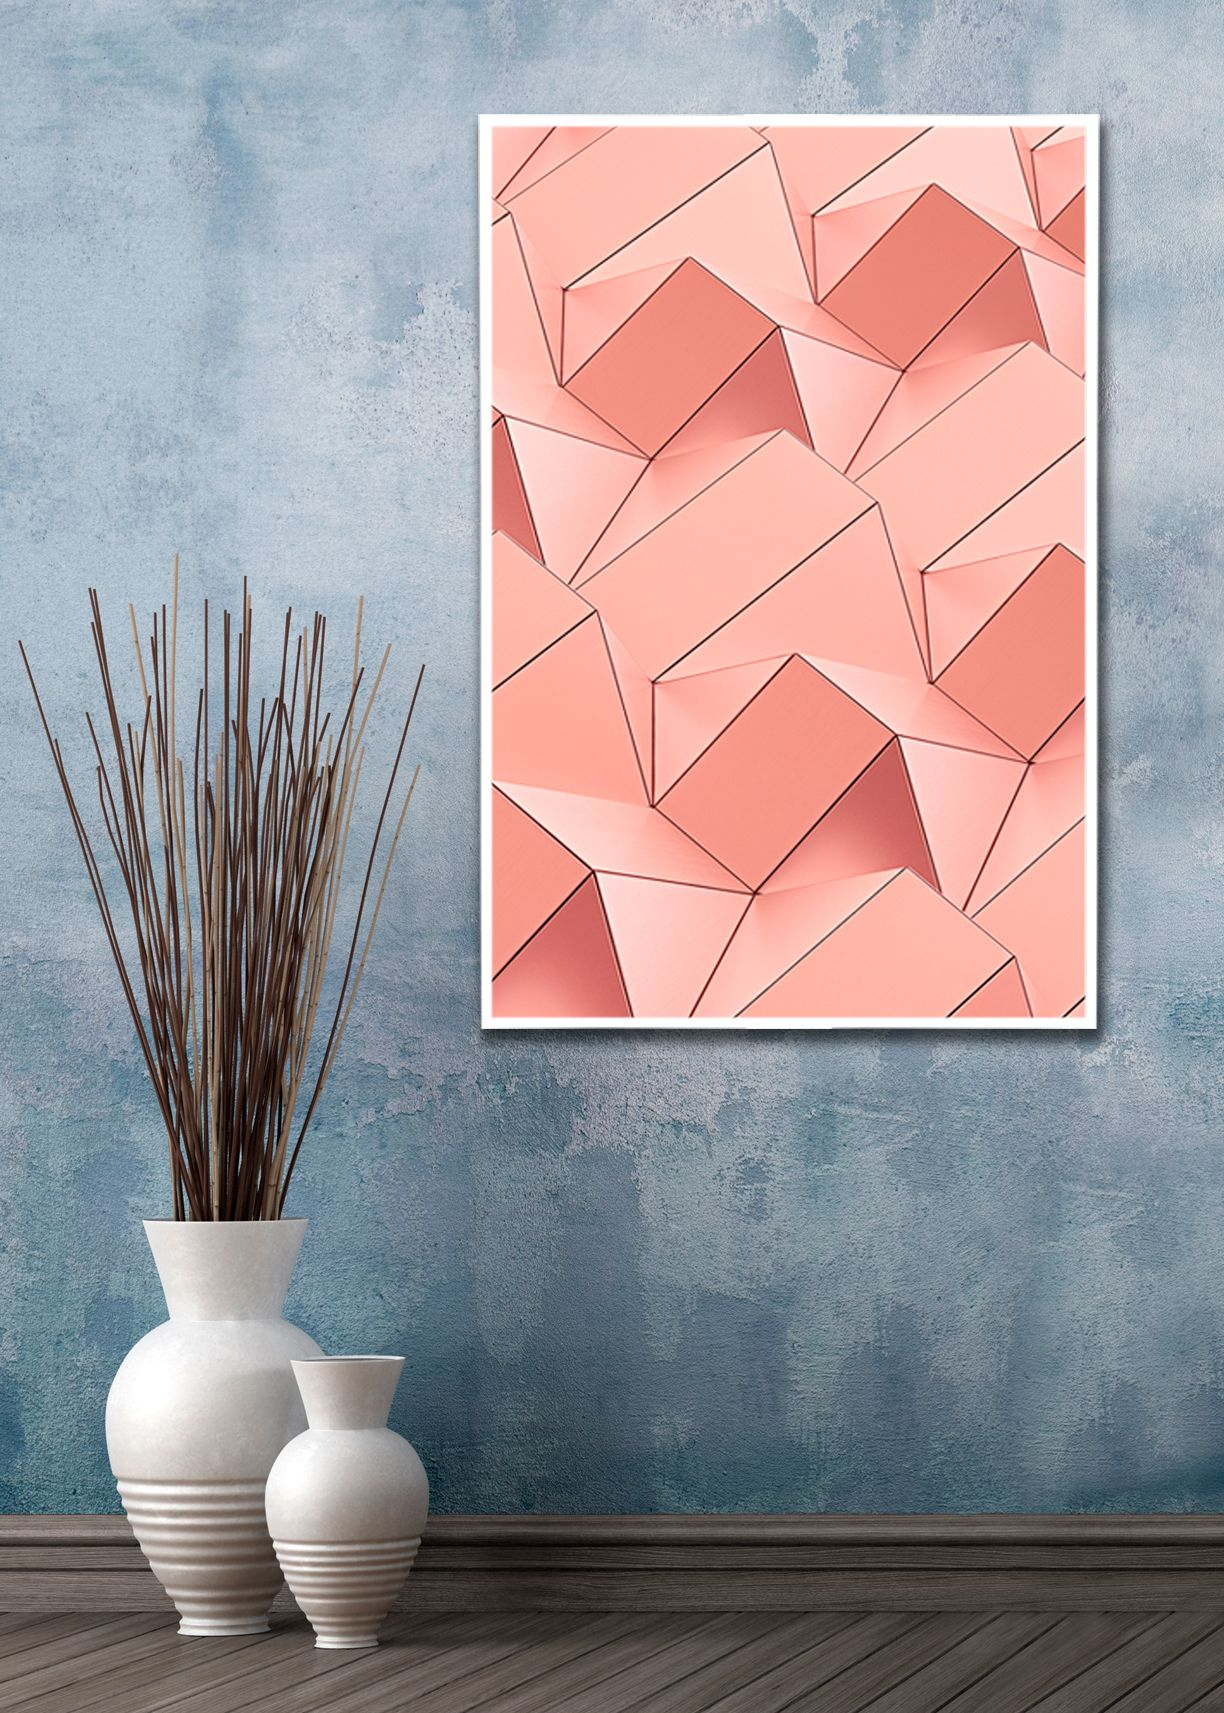 Geometric Art, Wall Art, Rose Gold Art, Minimalist Wall Art within Contemporary Geometric Wall Decor (Image 13 of 30)